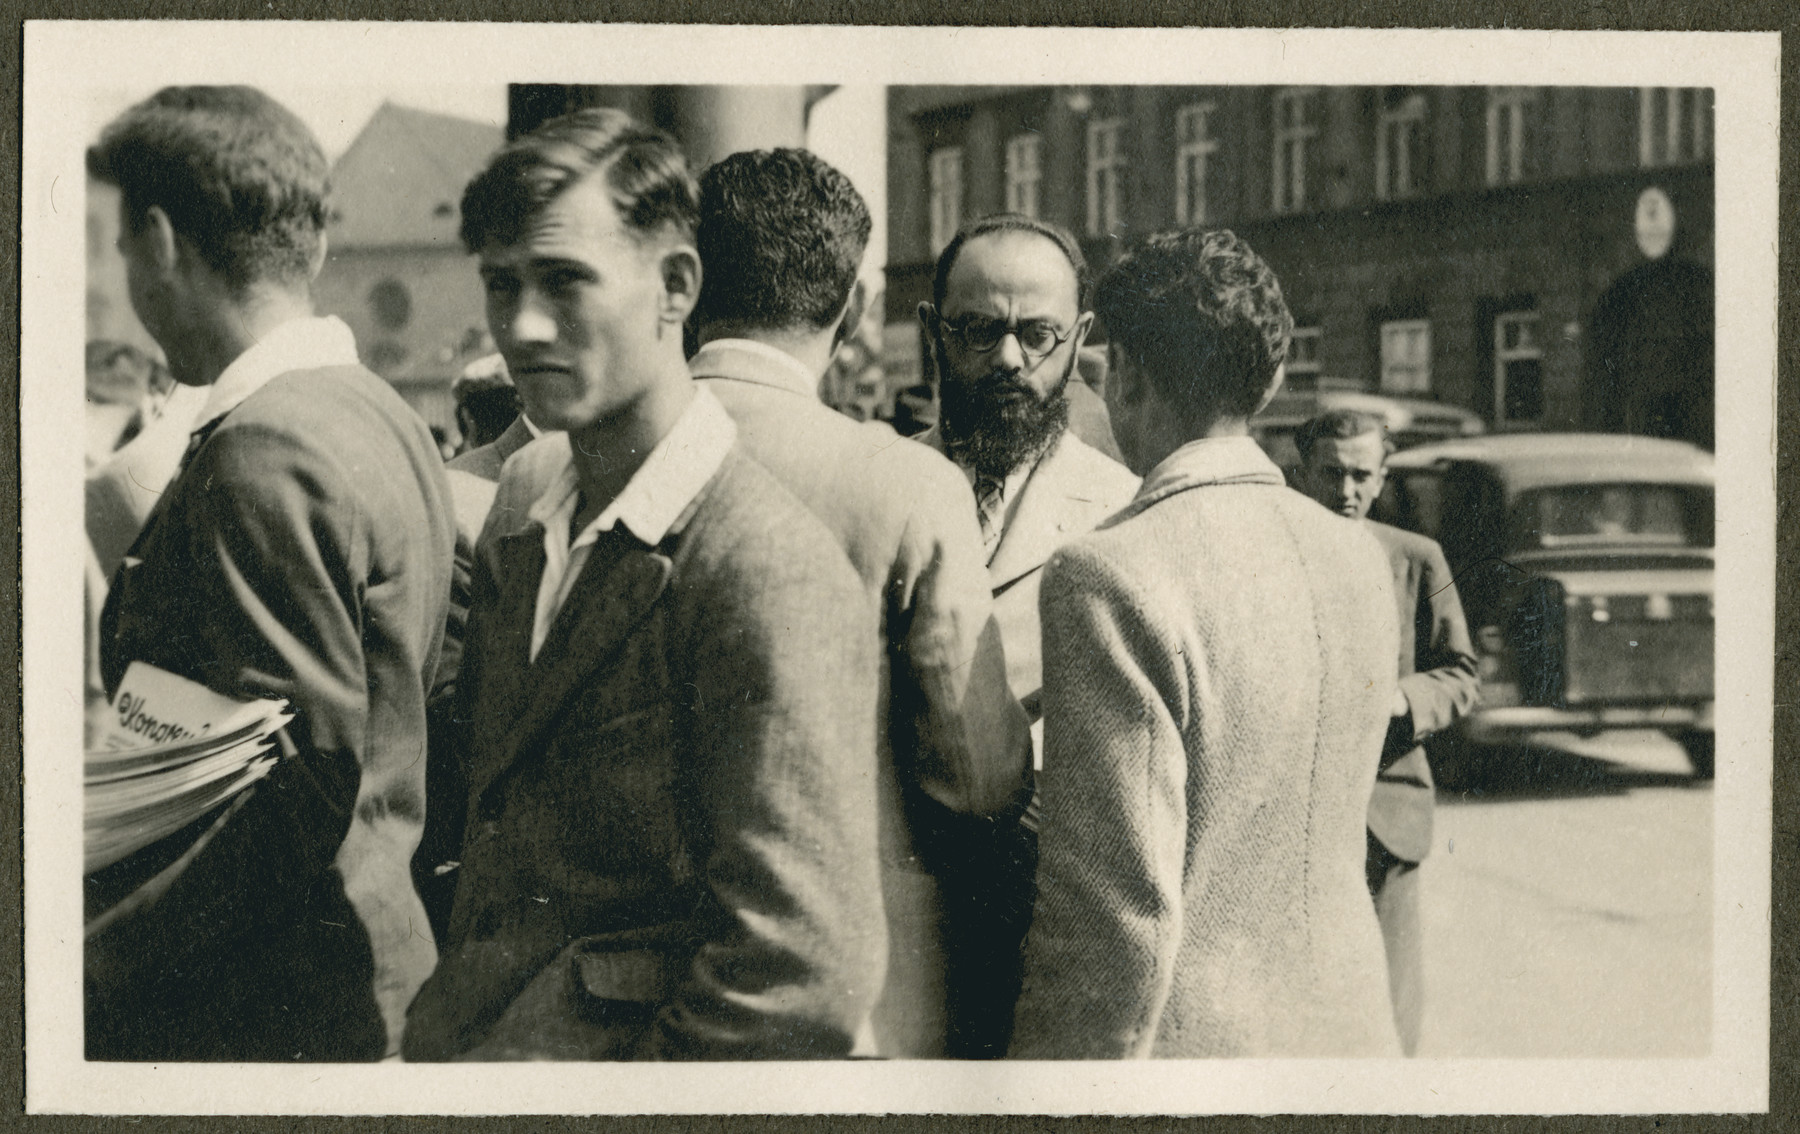 A group of men stand outside probably during the 18th Zionist Congress.